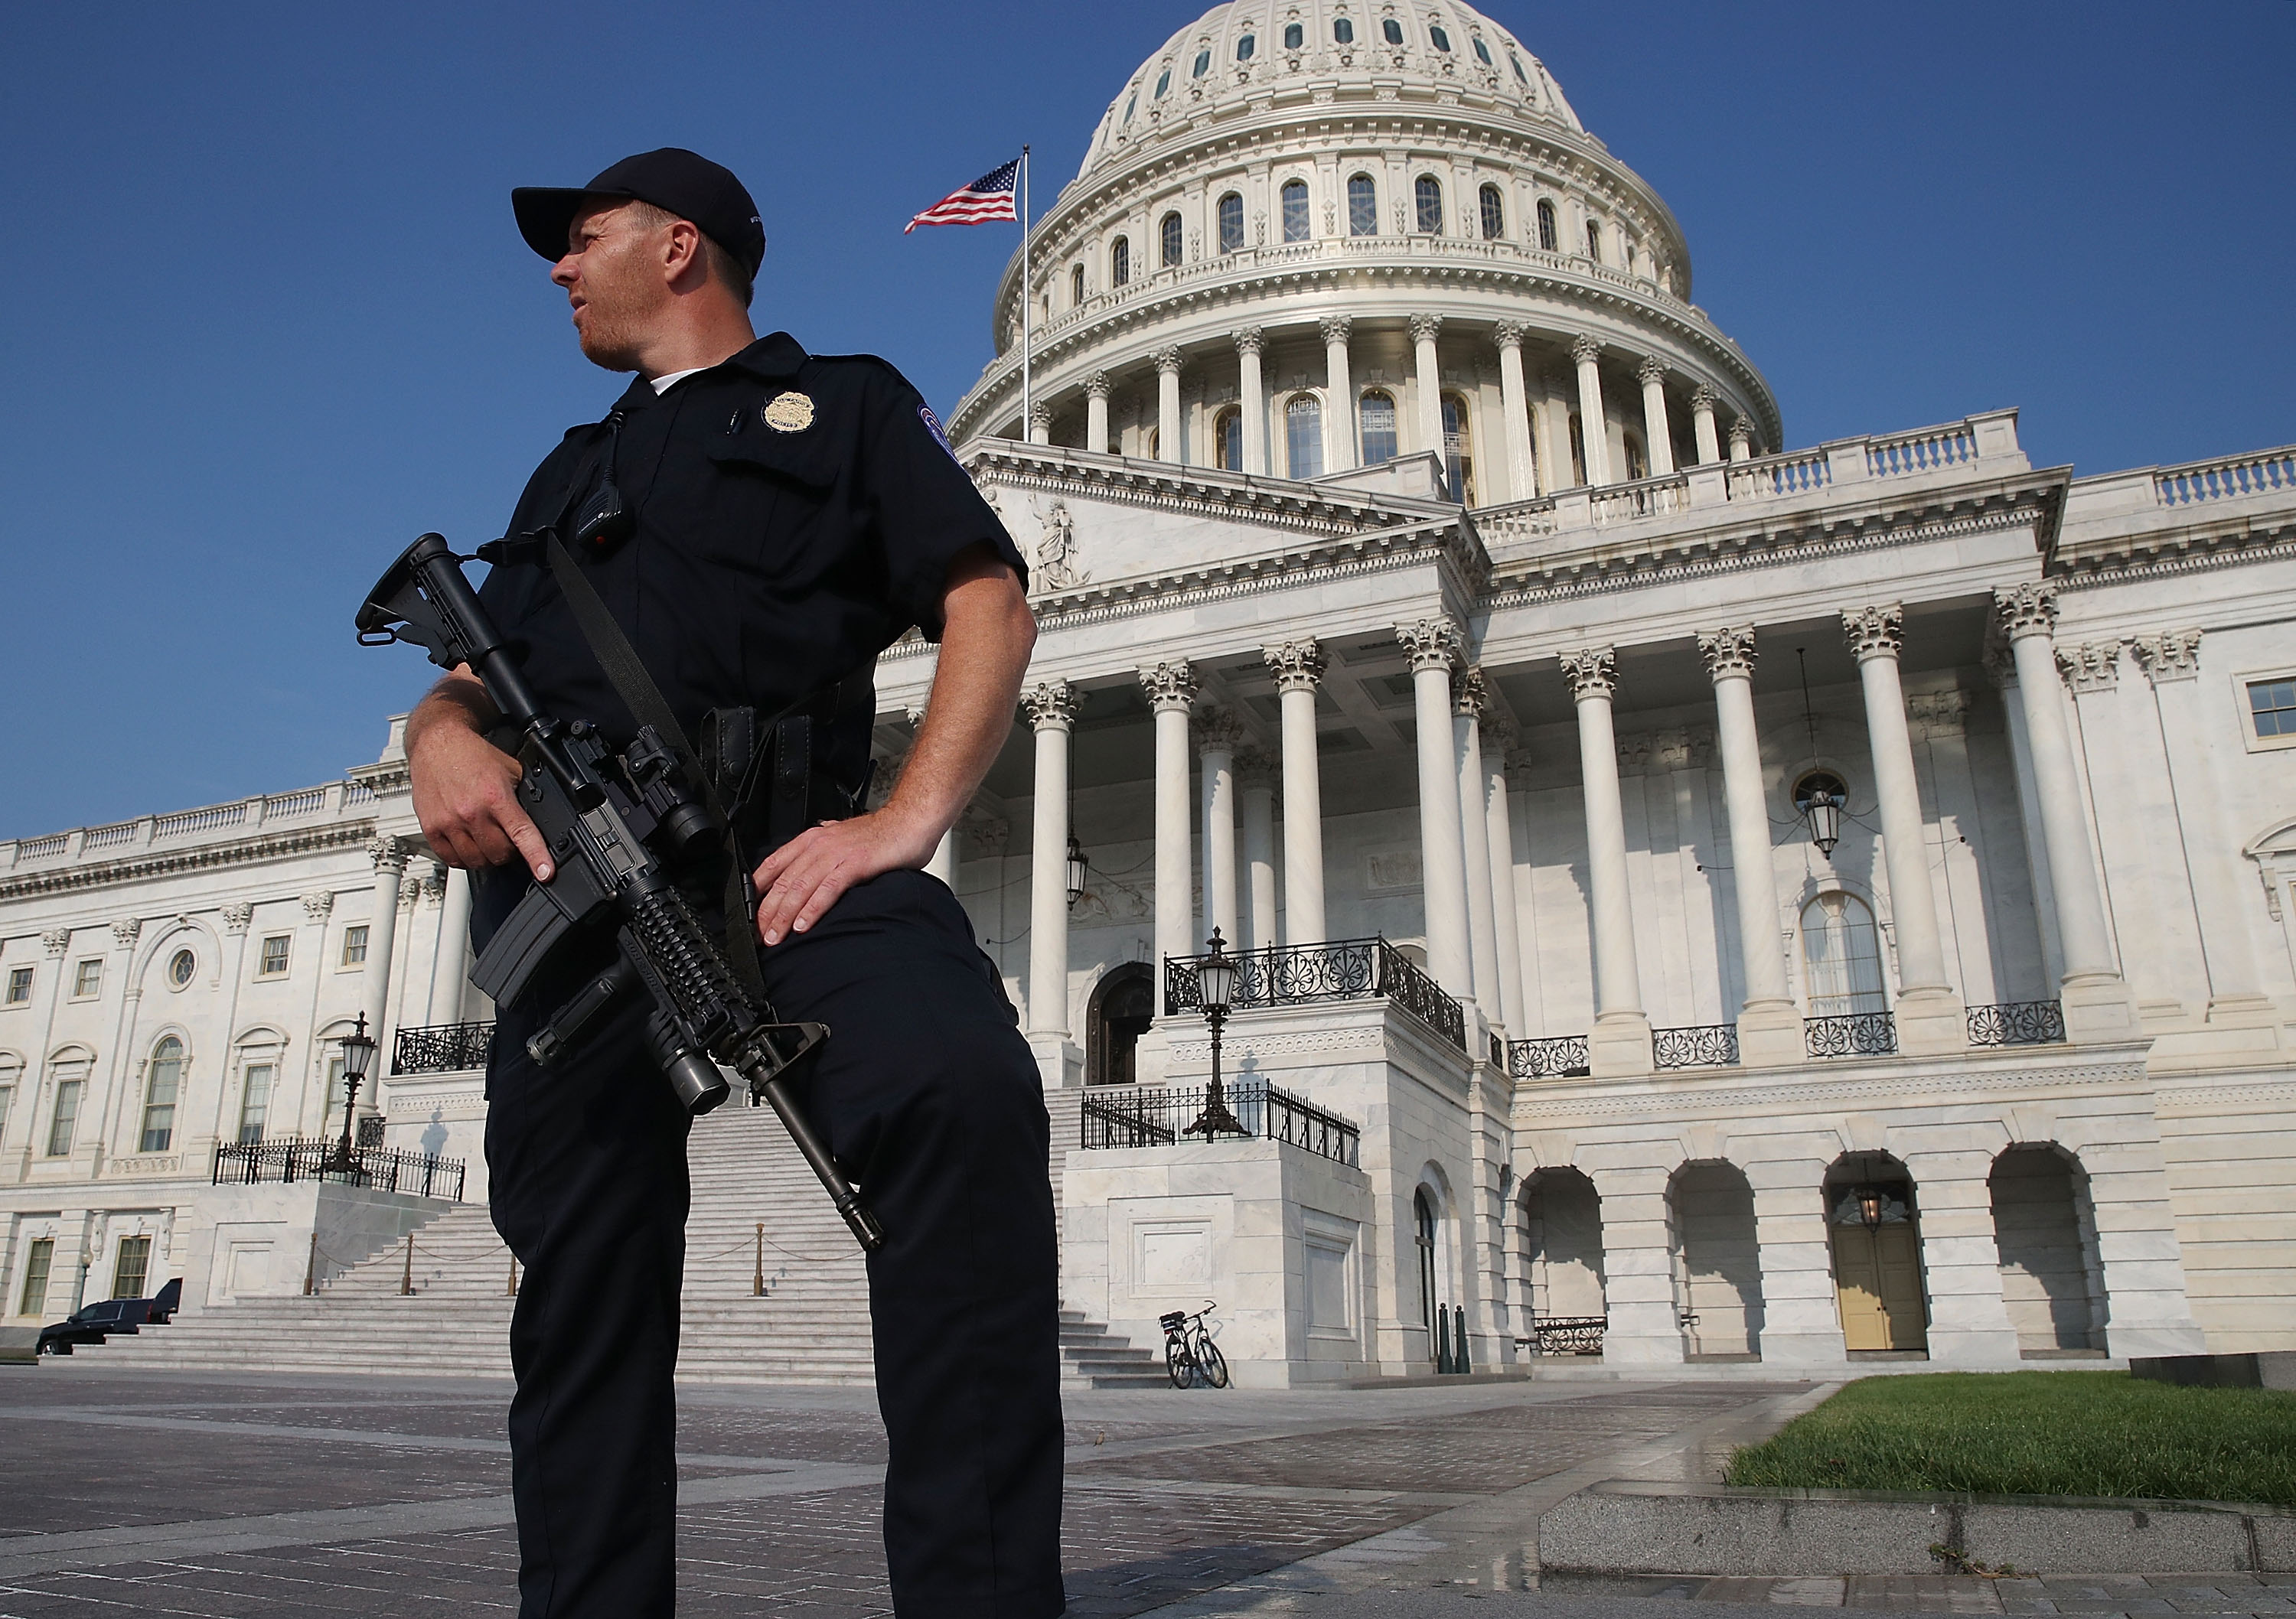 Did Scalise Shooter Ask 'Republicans or Democrats' Before Opening Fire?